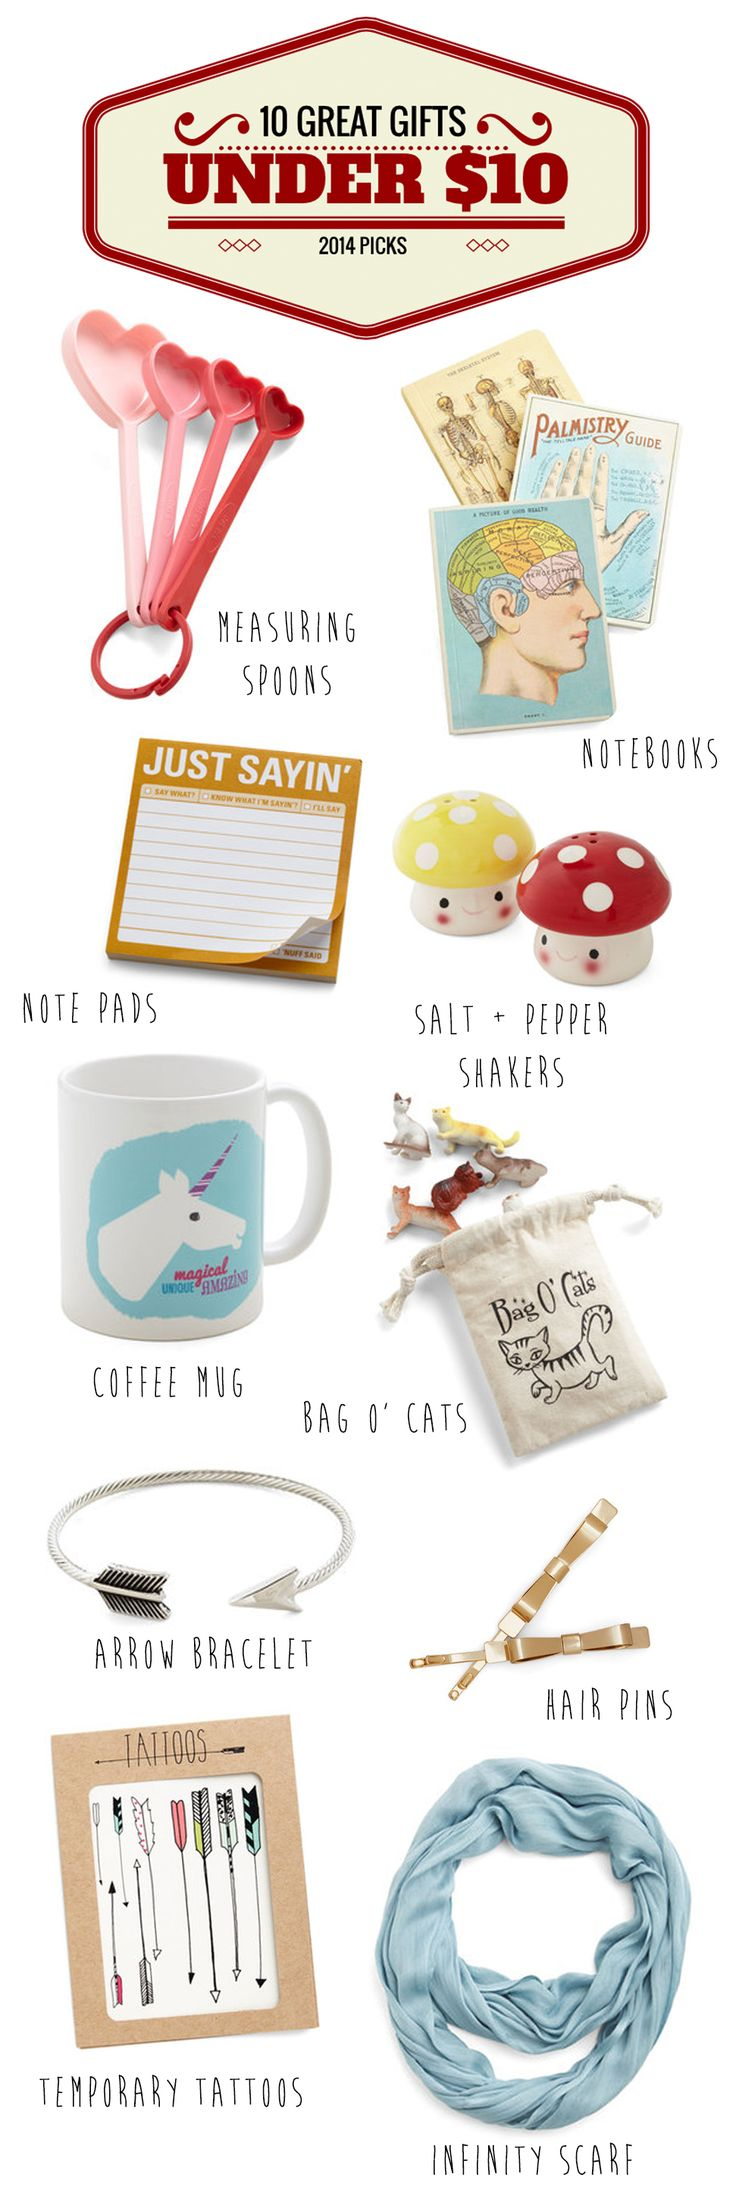 10 Gift Ideas Under $10.00 - lots of fun gifts for co ...